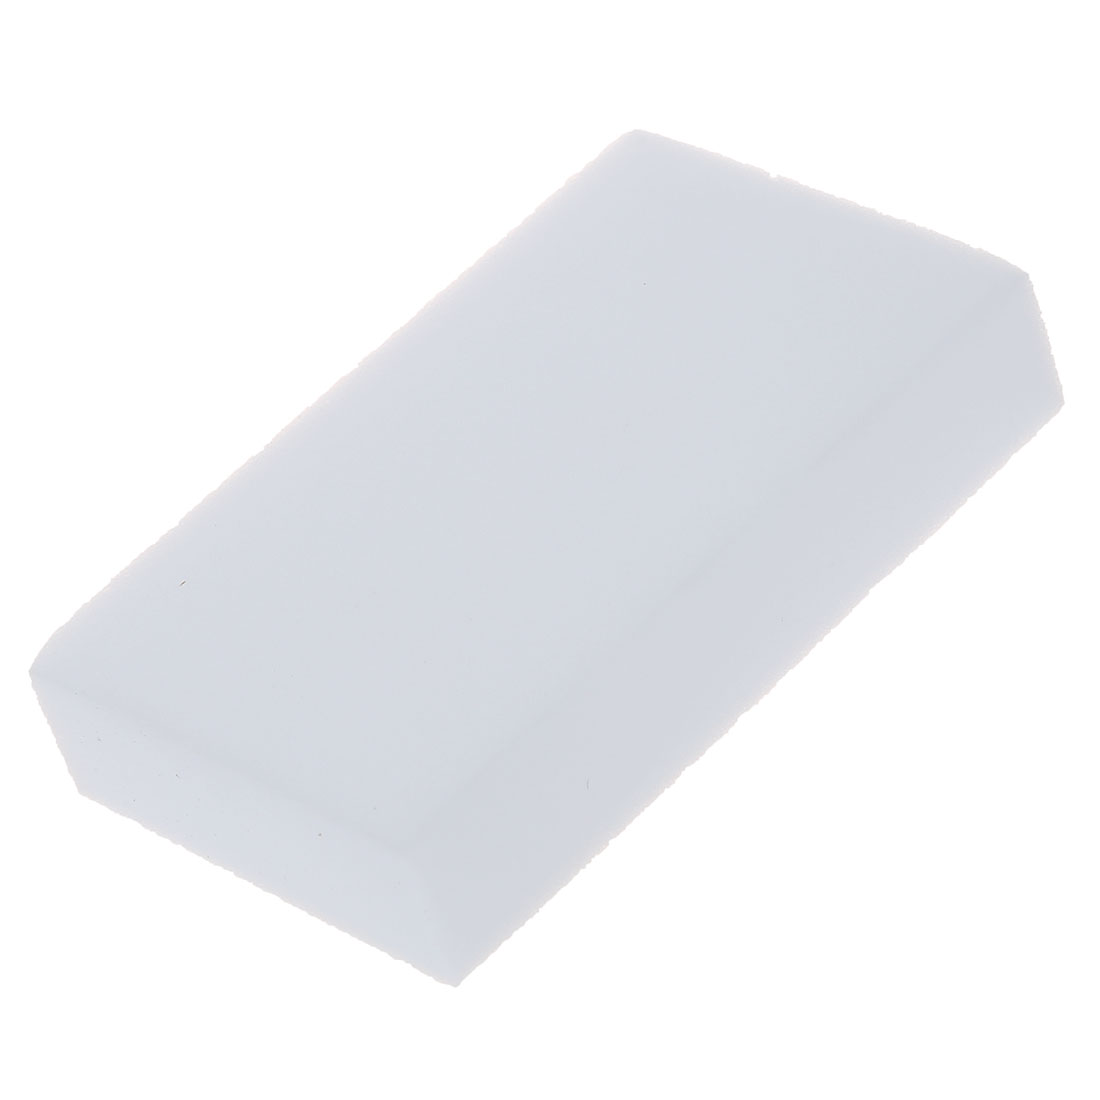 Household Cleaning Tools Hot Gczw-100x60x20mm 10pcs Magic Sponge Eraser Melamine Cleaner-white Cheapest Price From Our Site Household Cleaning